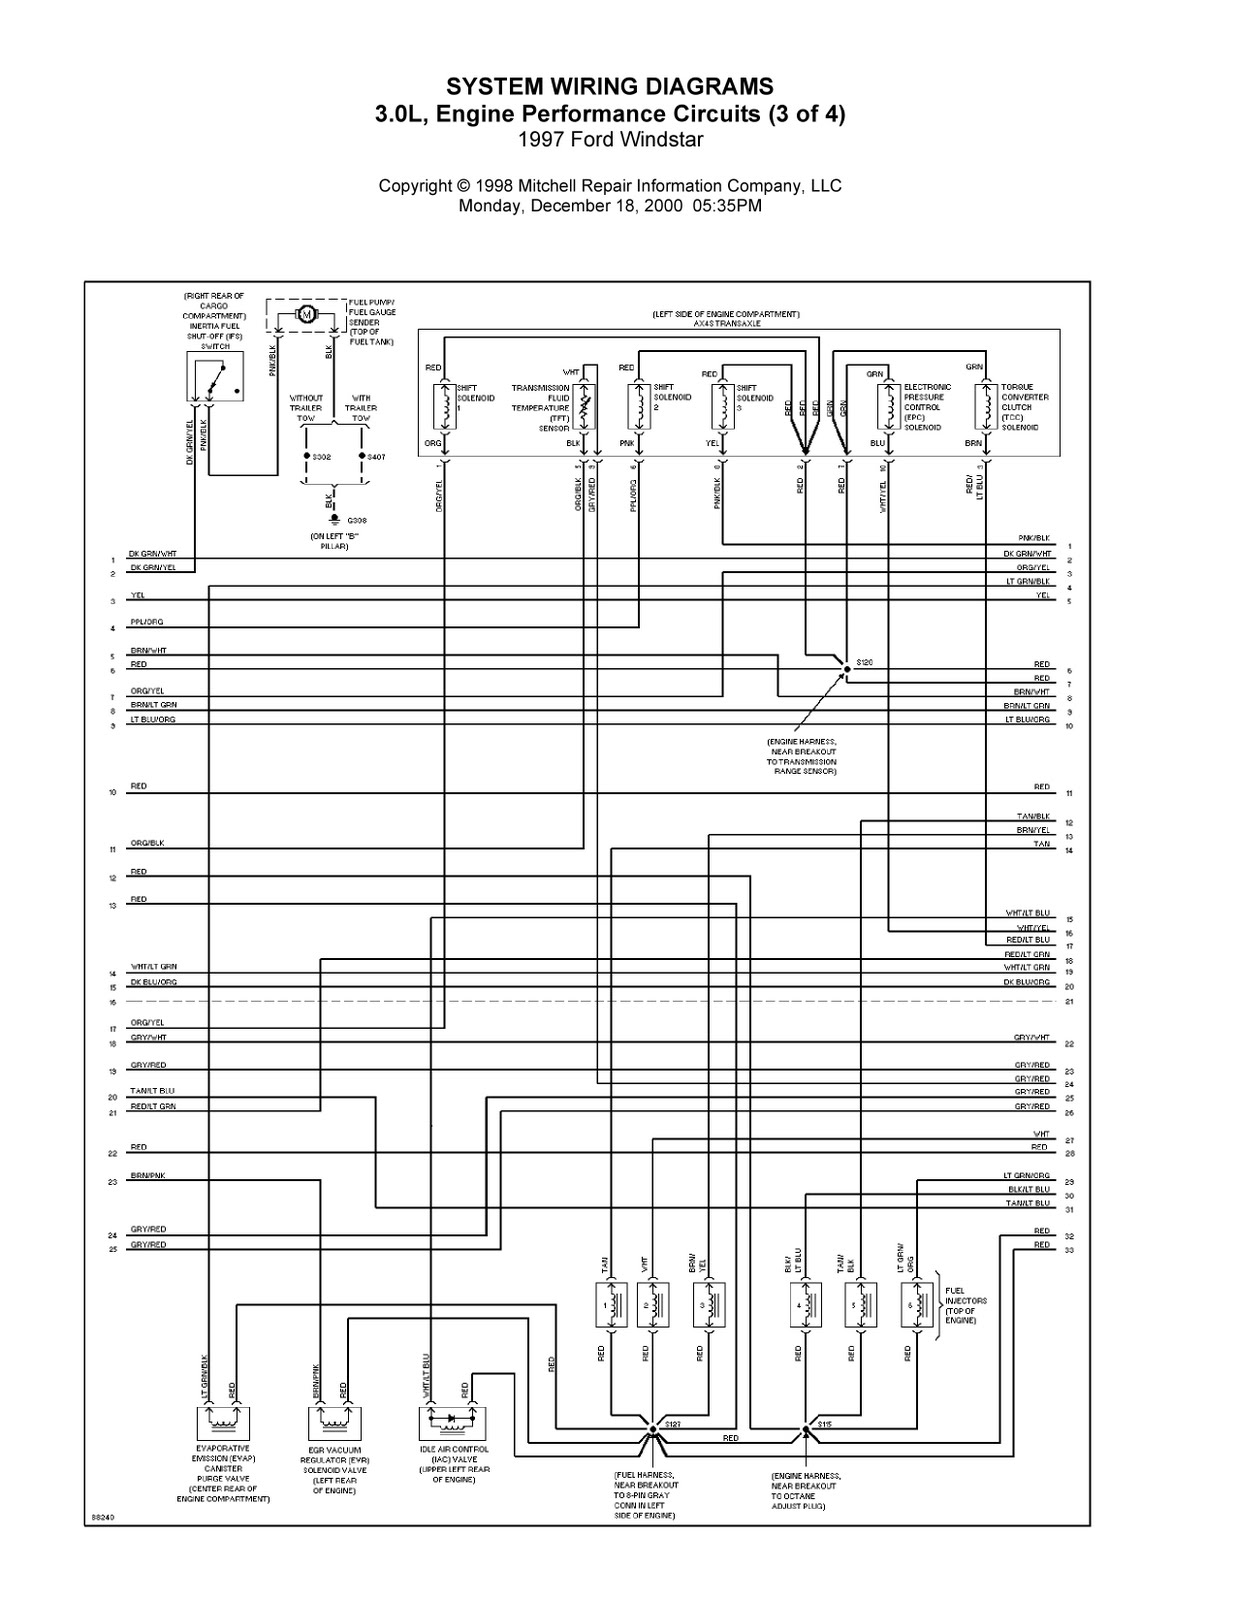 1998 Ford Windstar Wiring Schematic Trusted Diagrams Radio Diagram 1997 Complete System Rh Wiringdiagramsolution Blogspot Com